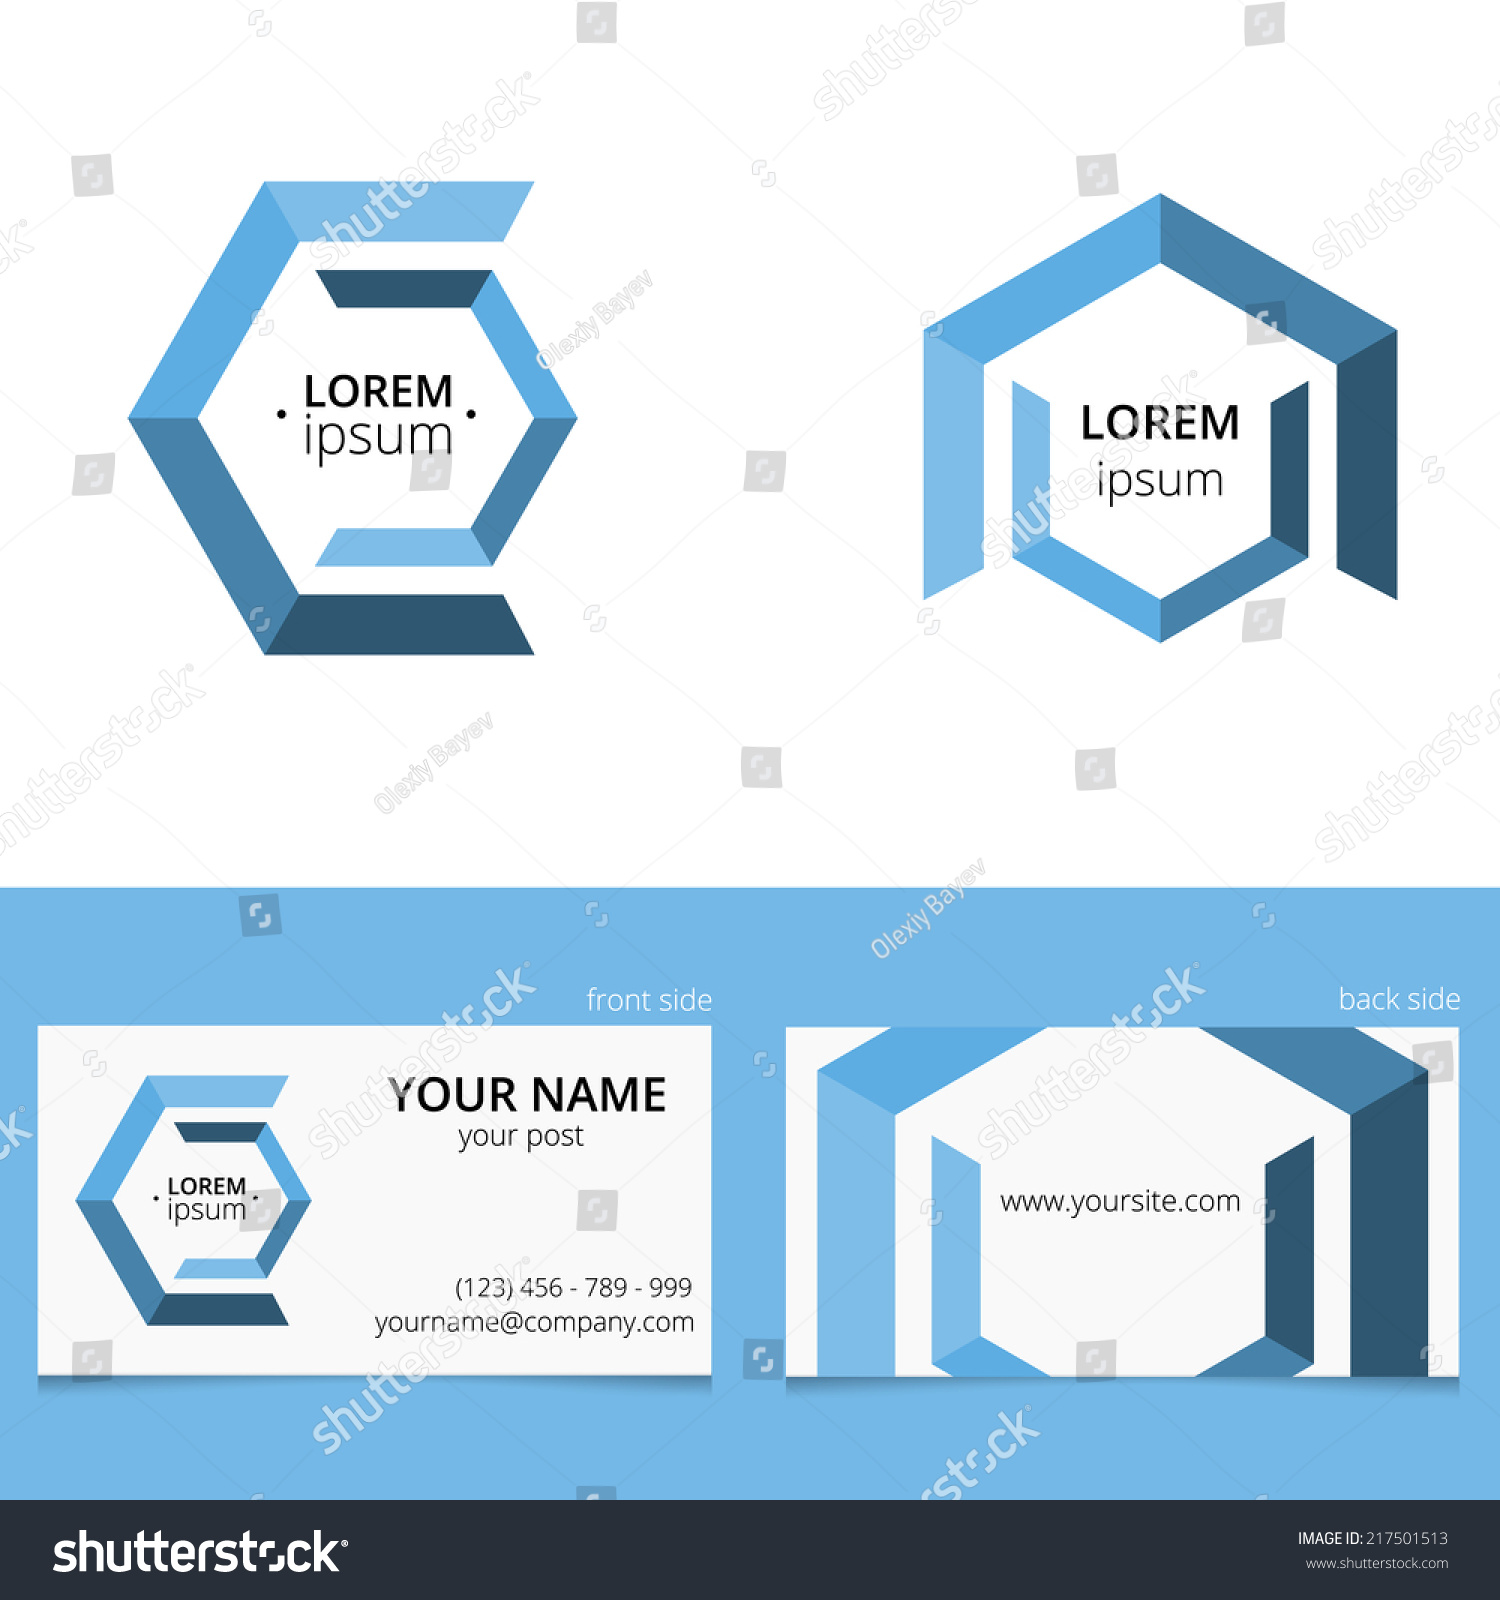 double sided place card template - hex logo template with place for text and design for two